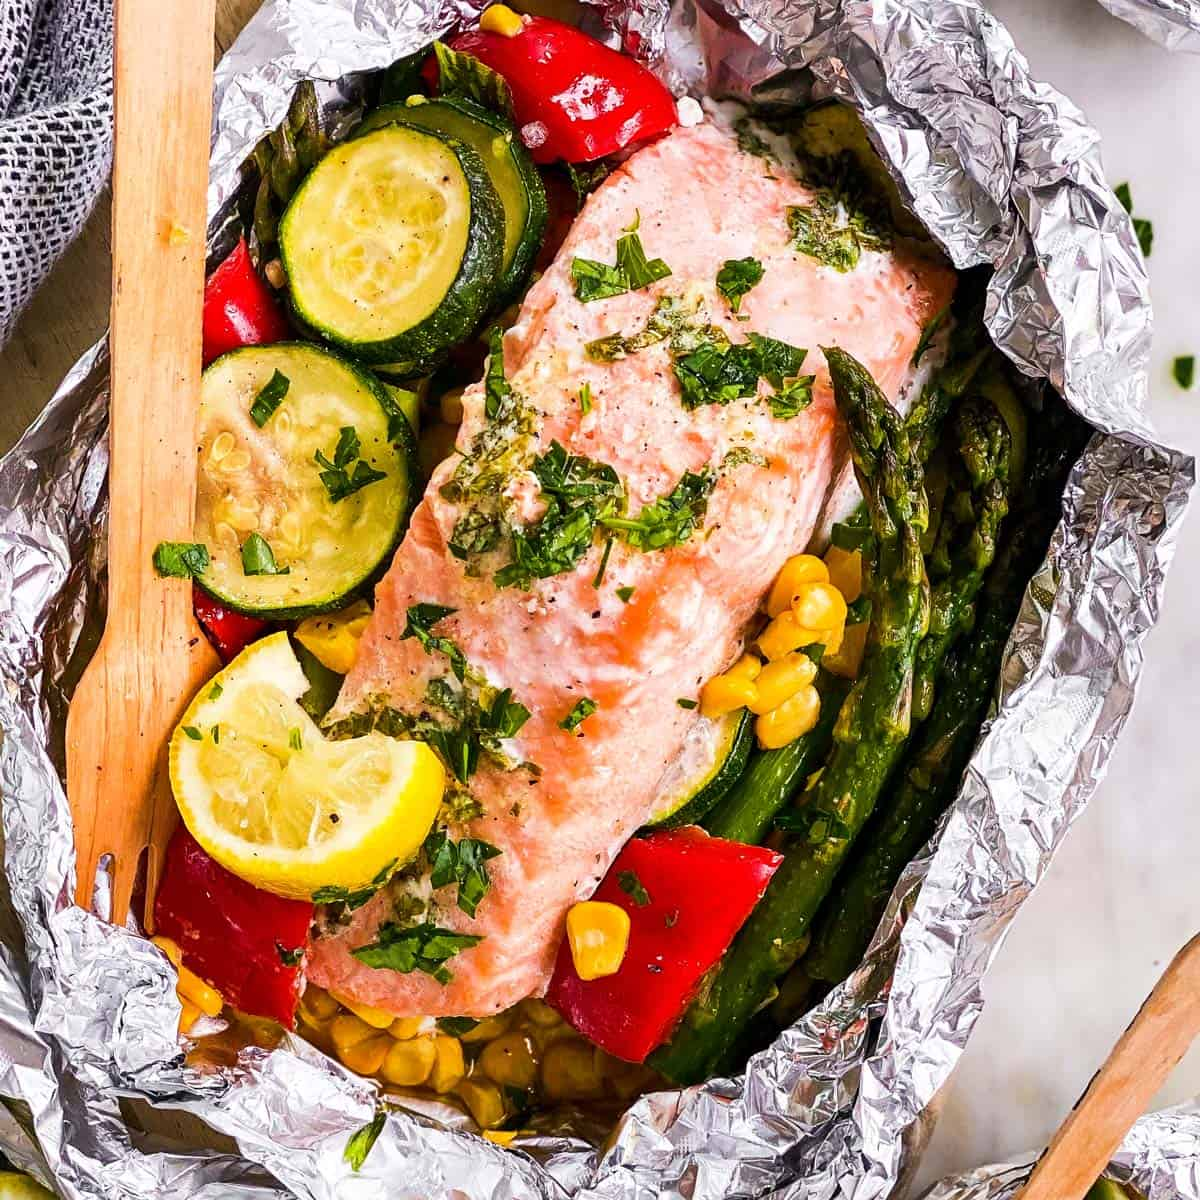 overhead view of salmon fillet in opened foil packet over bed of summer vegetables, with wooden fork stuck in vegetables